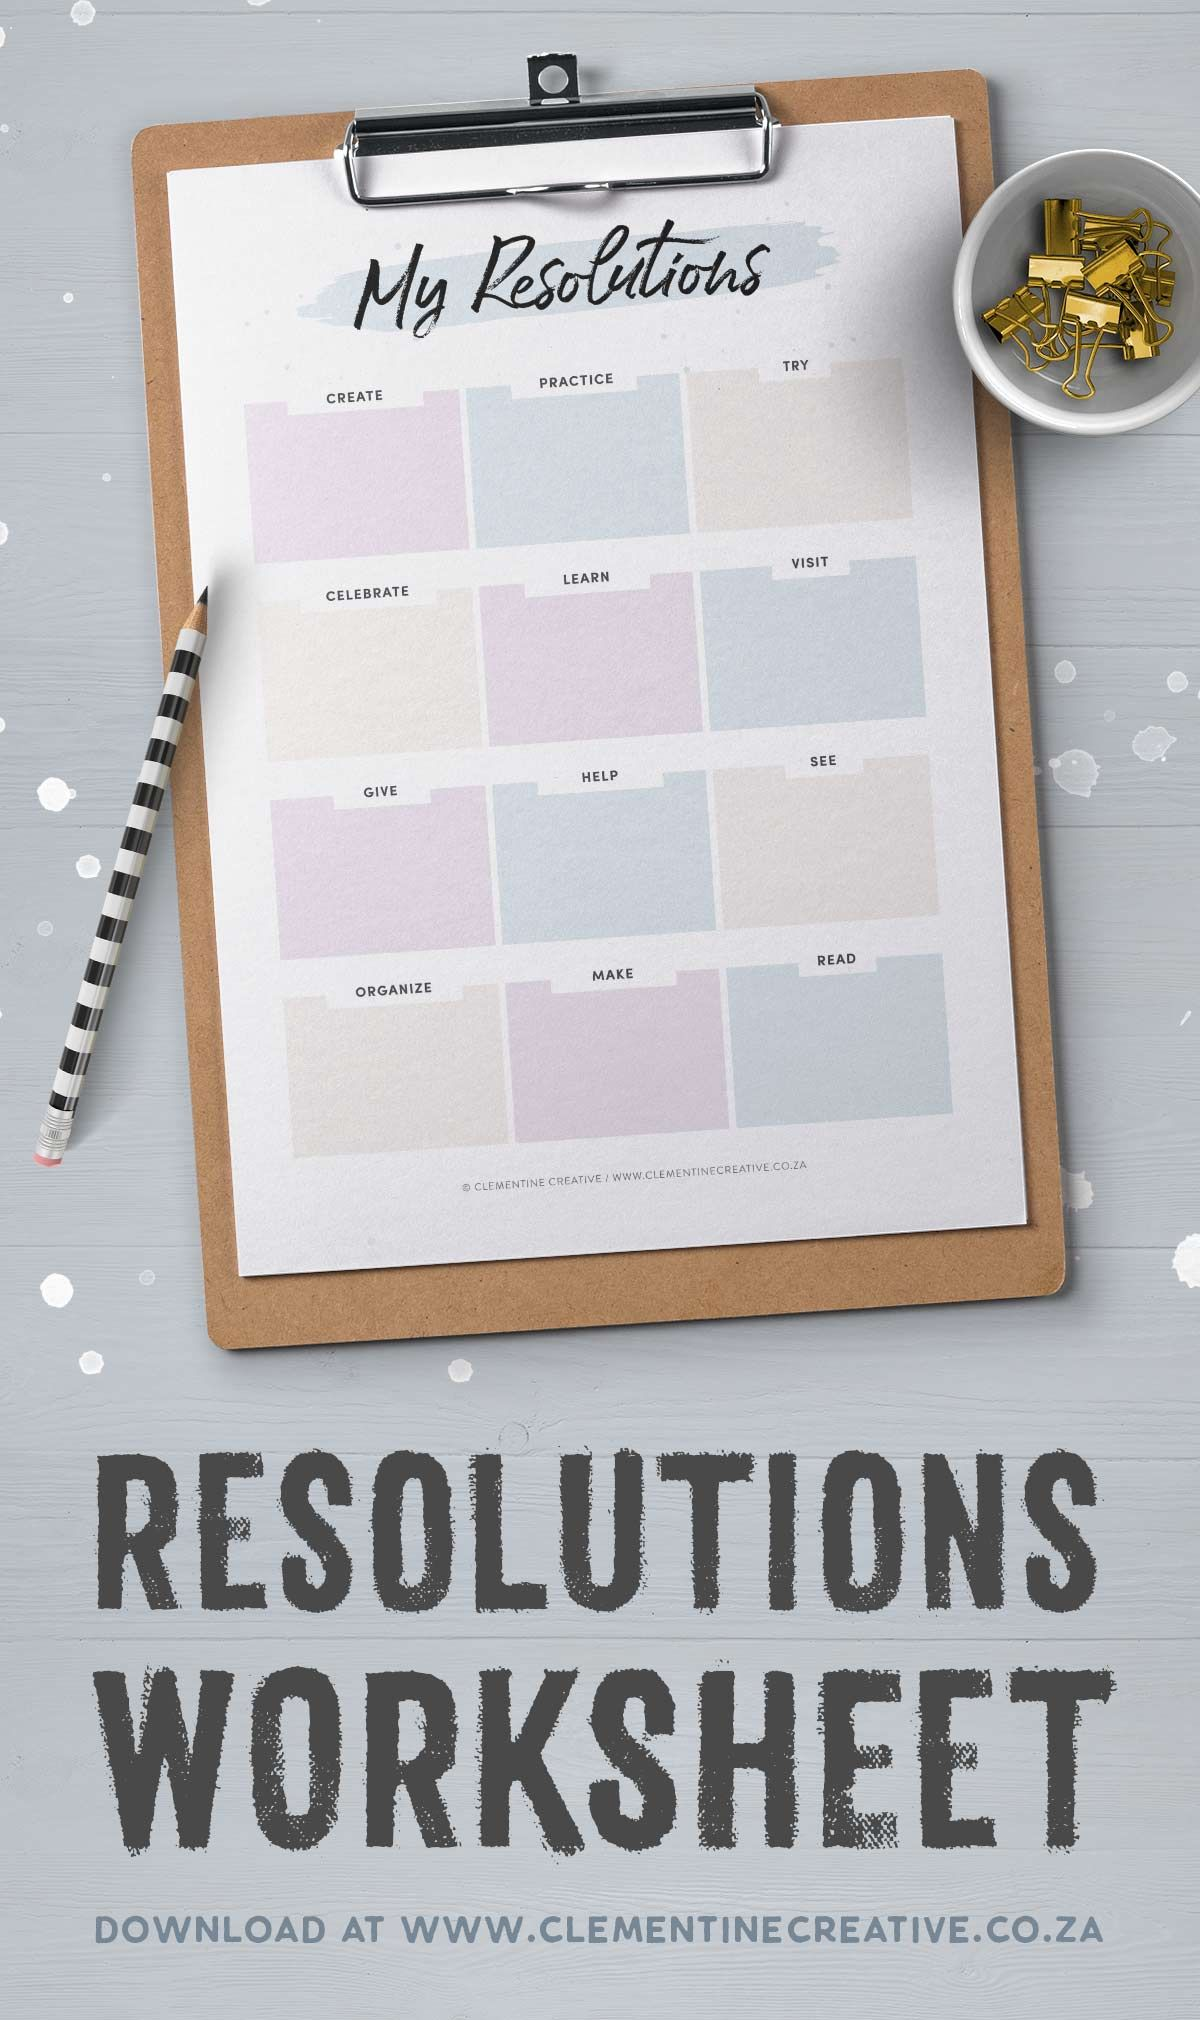 Set New Year S Goals With This Resolutions Worksheet Free